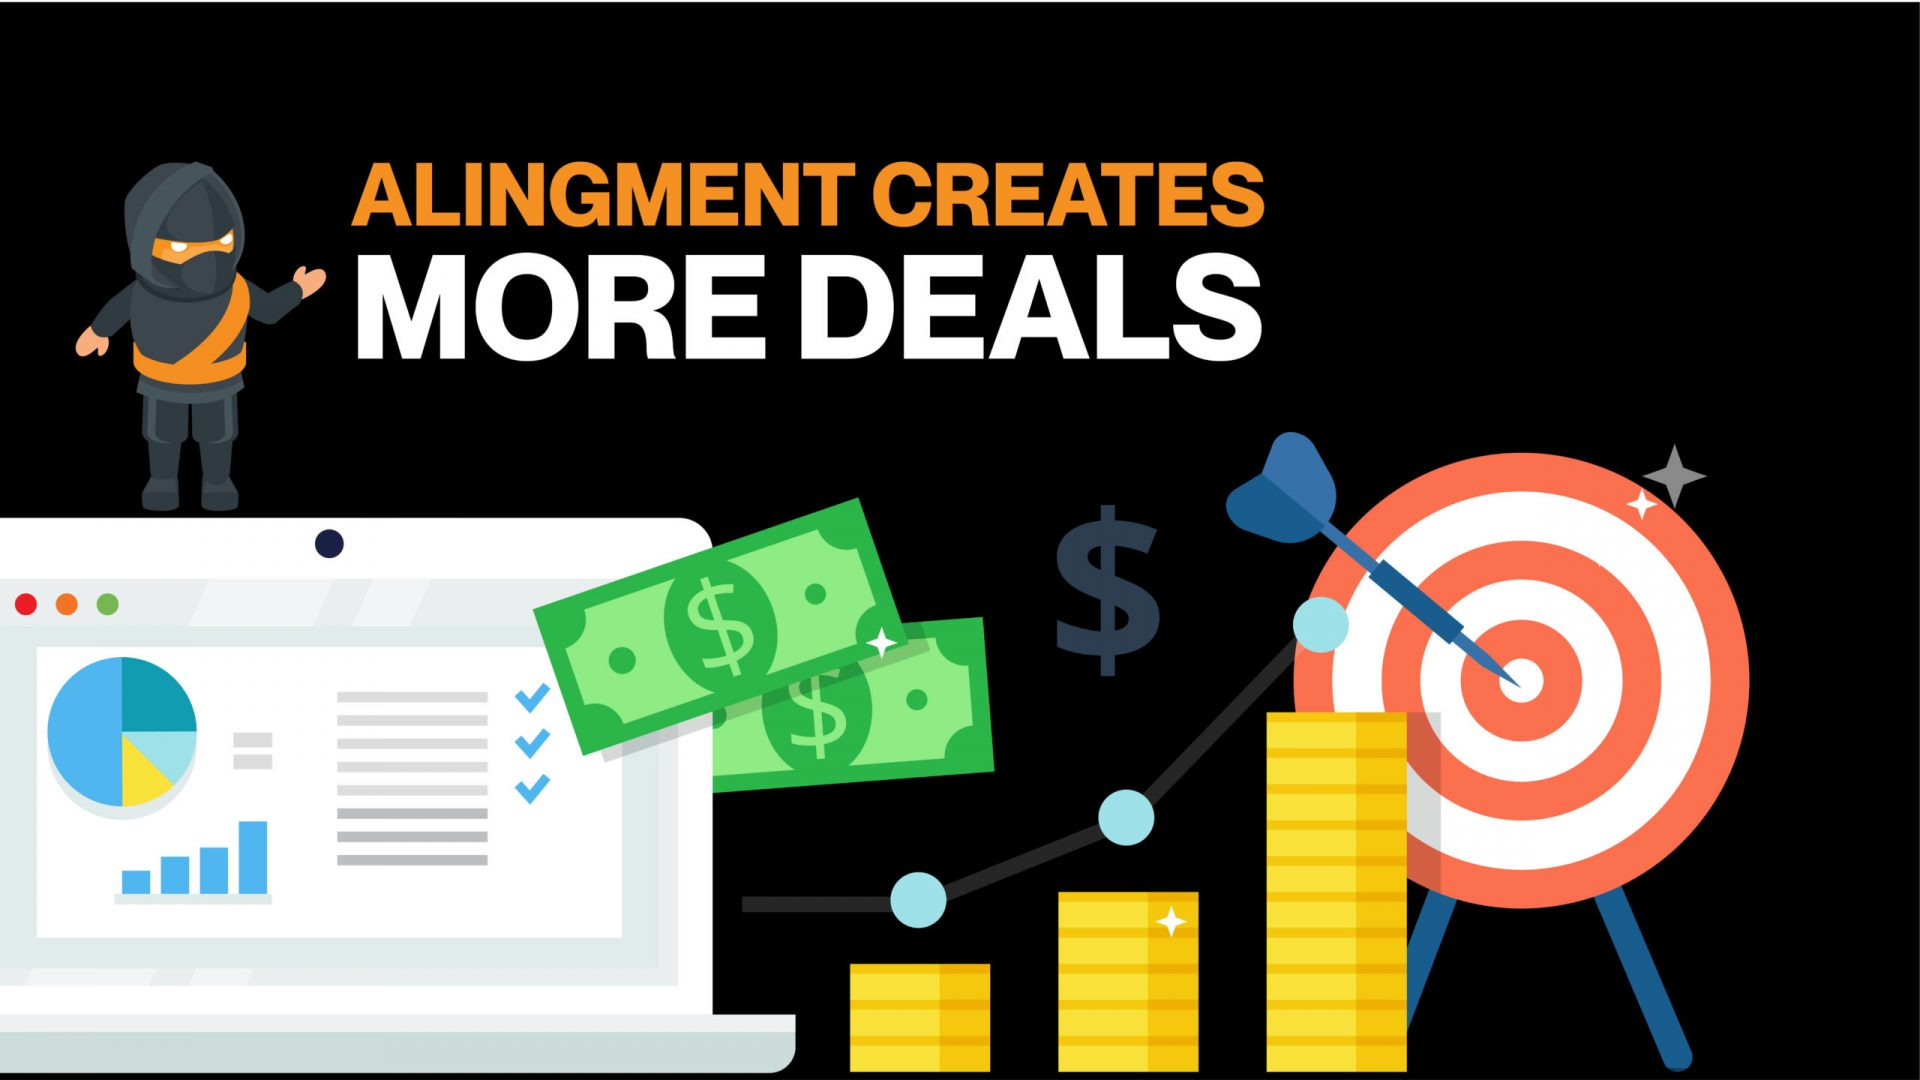 Digital Kungfu - 5 ways sales and marketing alignment leads to more deals